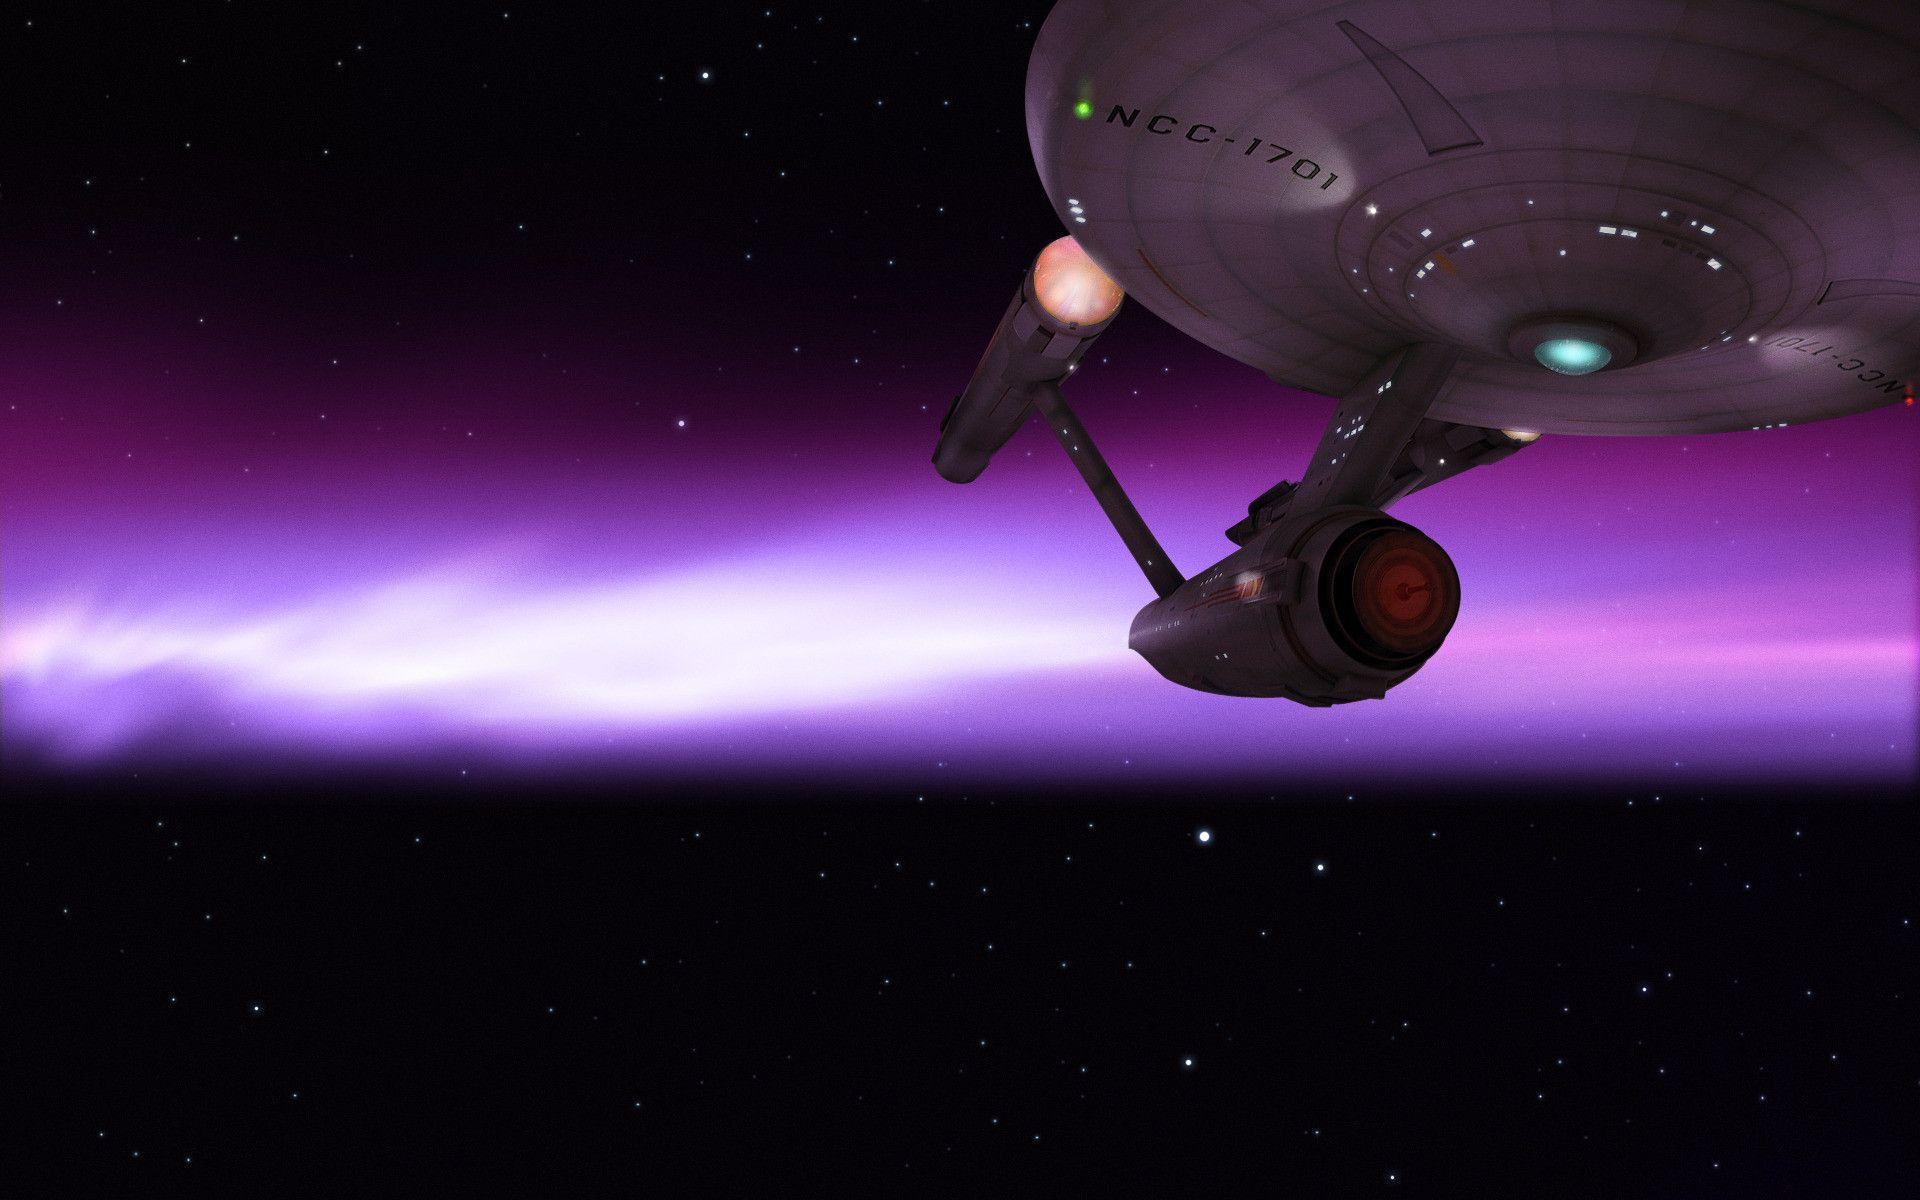 enterprise e wallpaper hd - photo #15